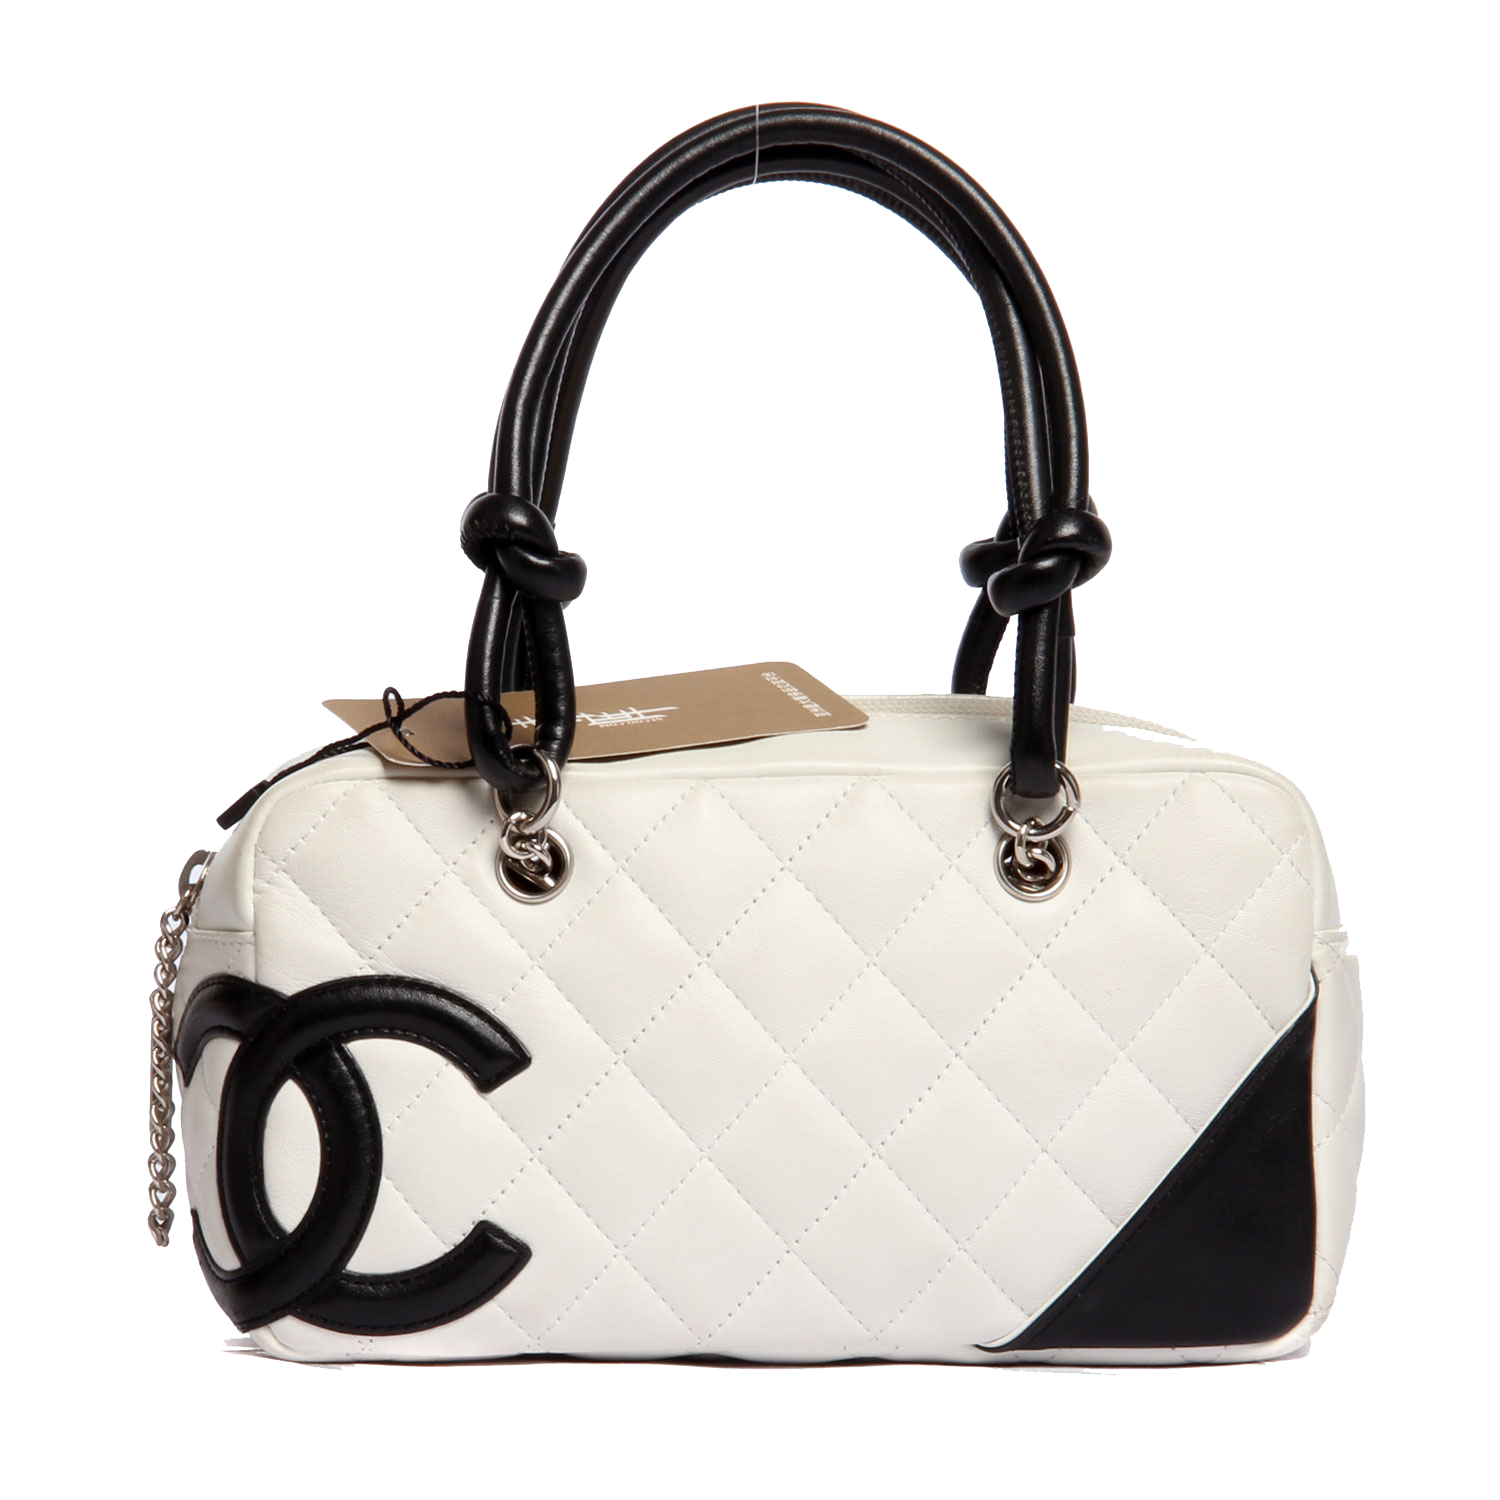 Shop Beautxc9 Maes Handbag Chanel Free Download Image PNG Image